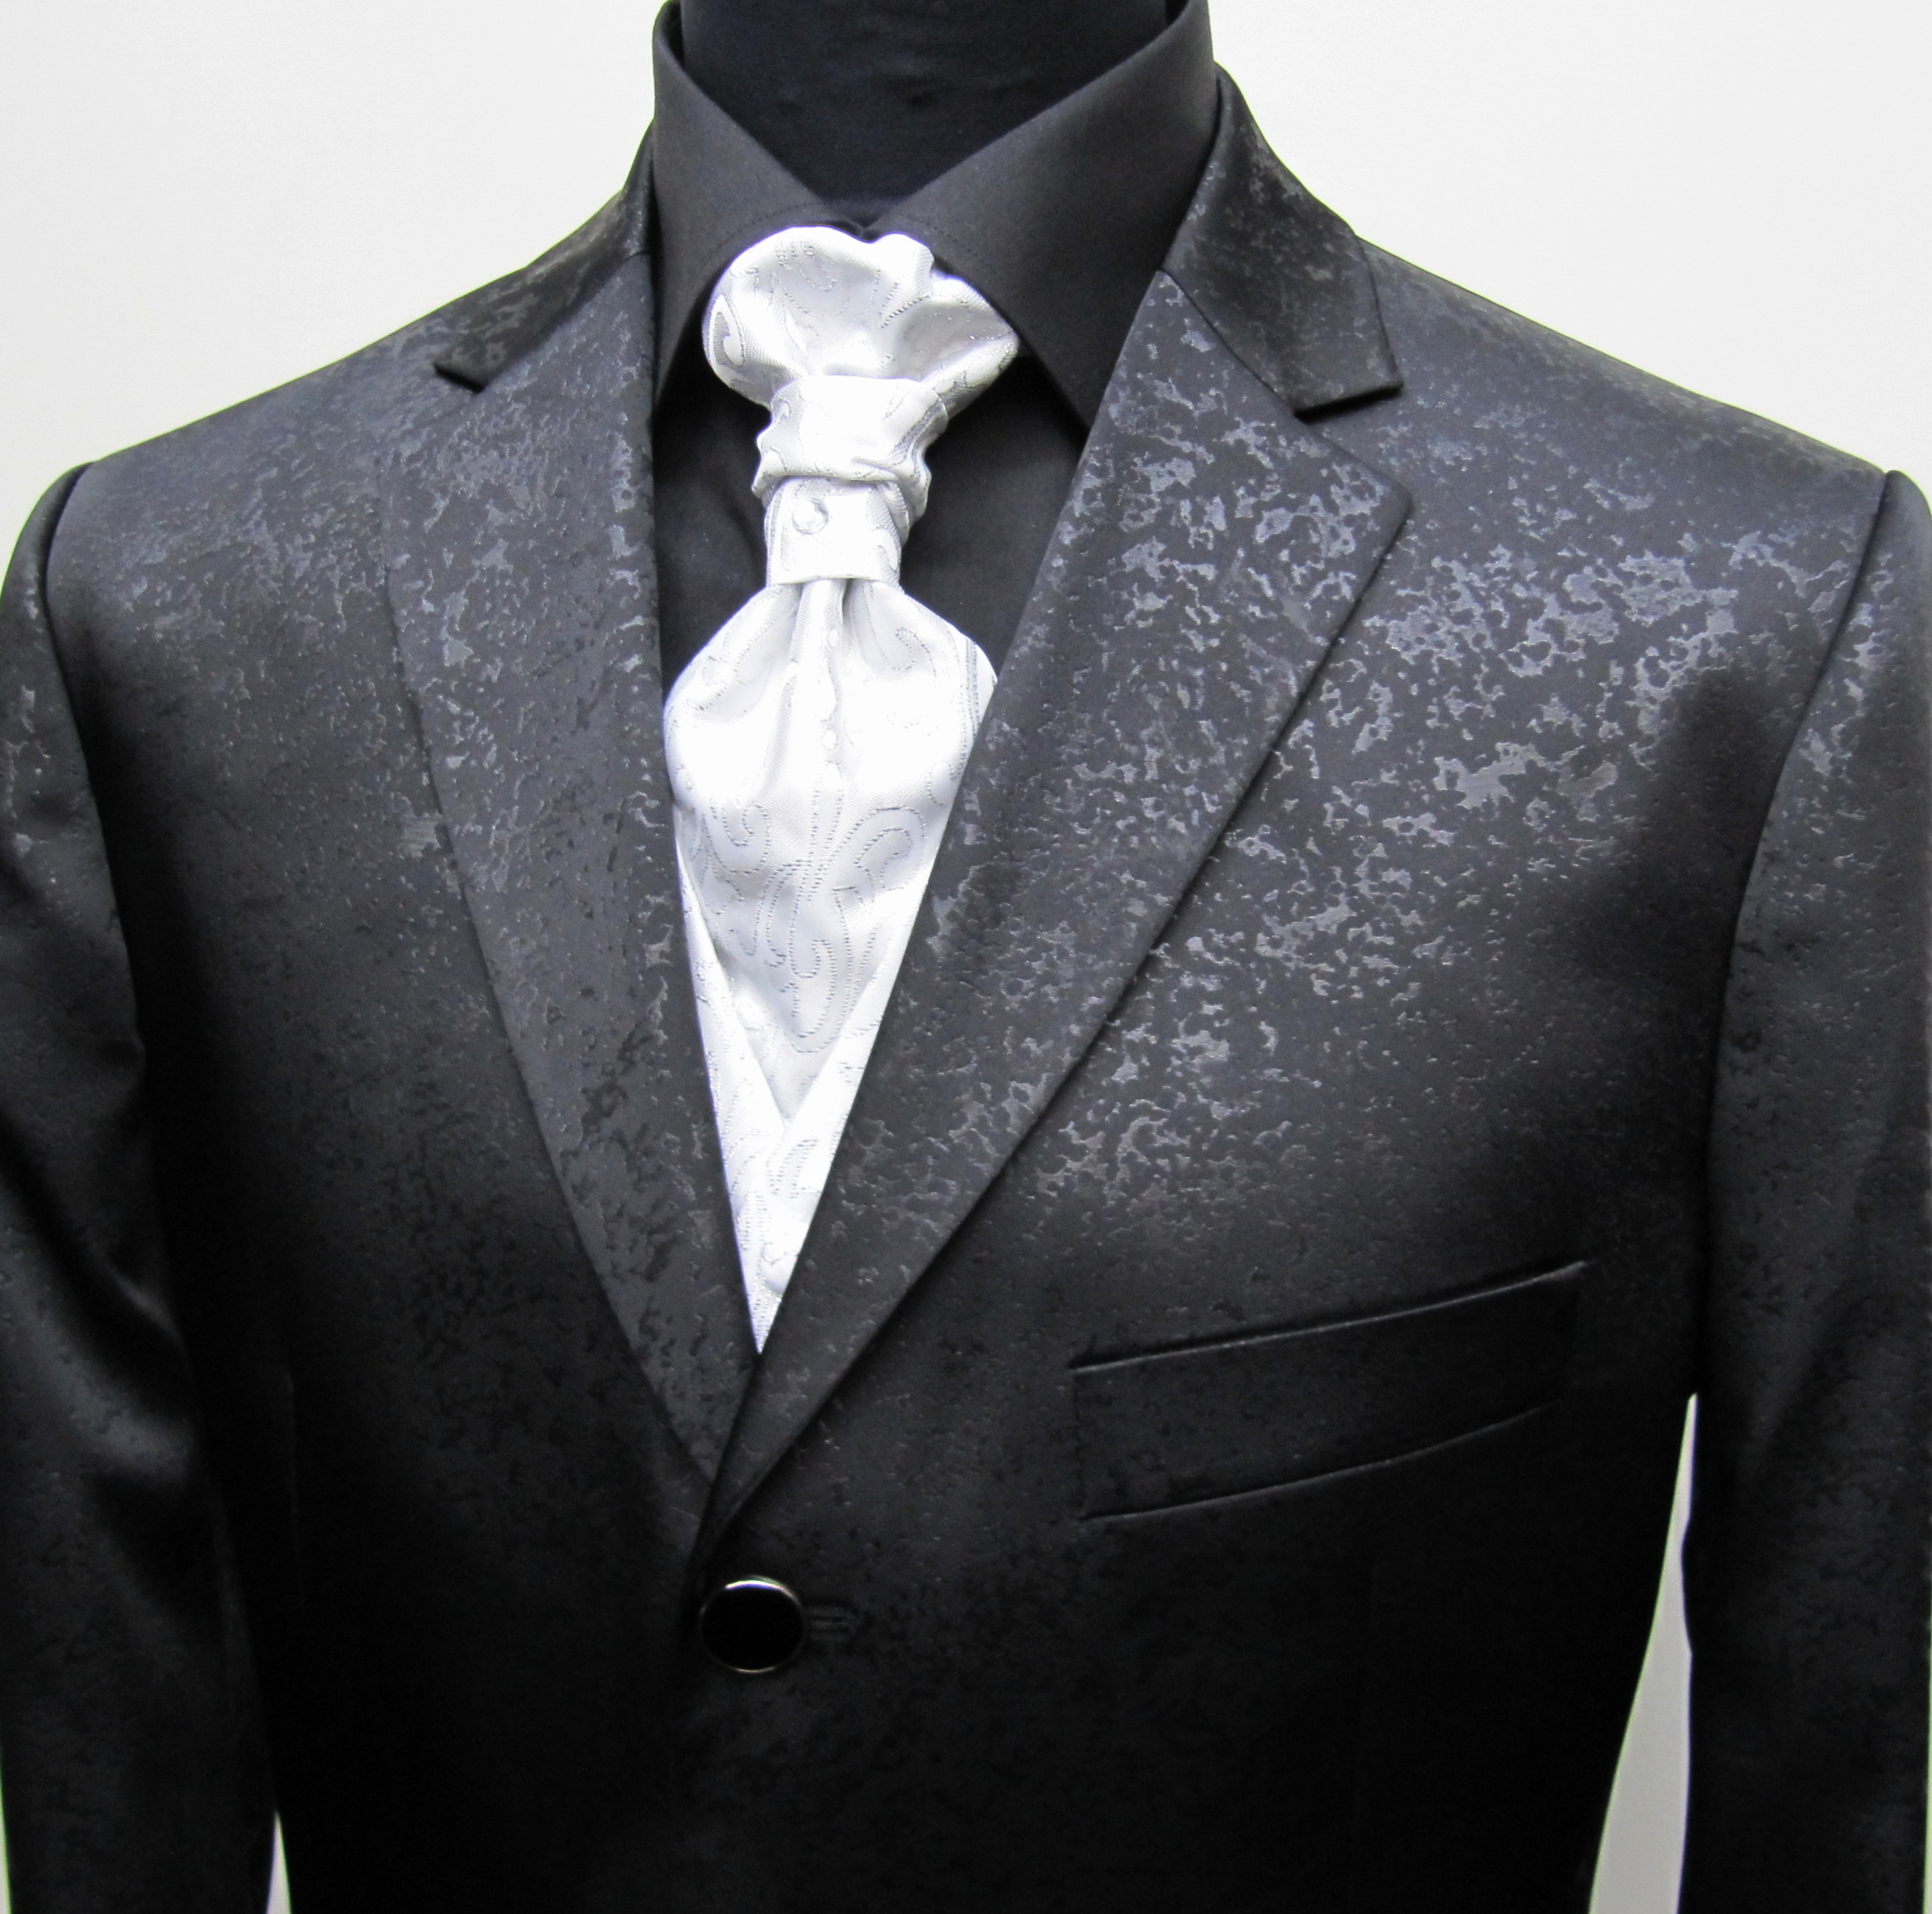 Redingote Homme Costume Satin-Homme-Costume-Mariage e7caf2c4a2d